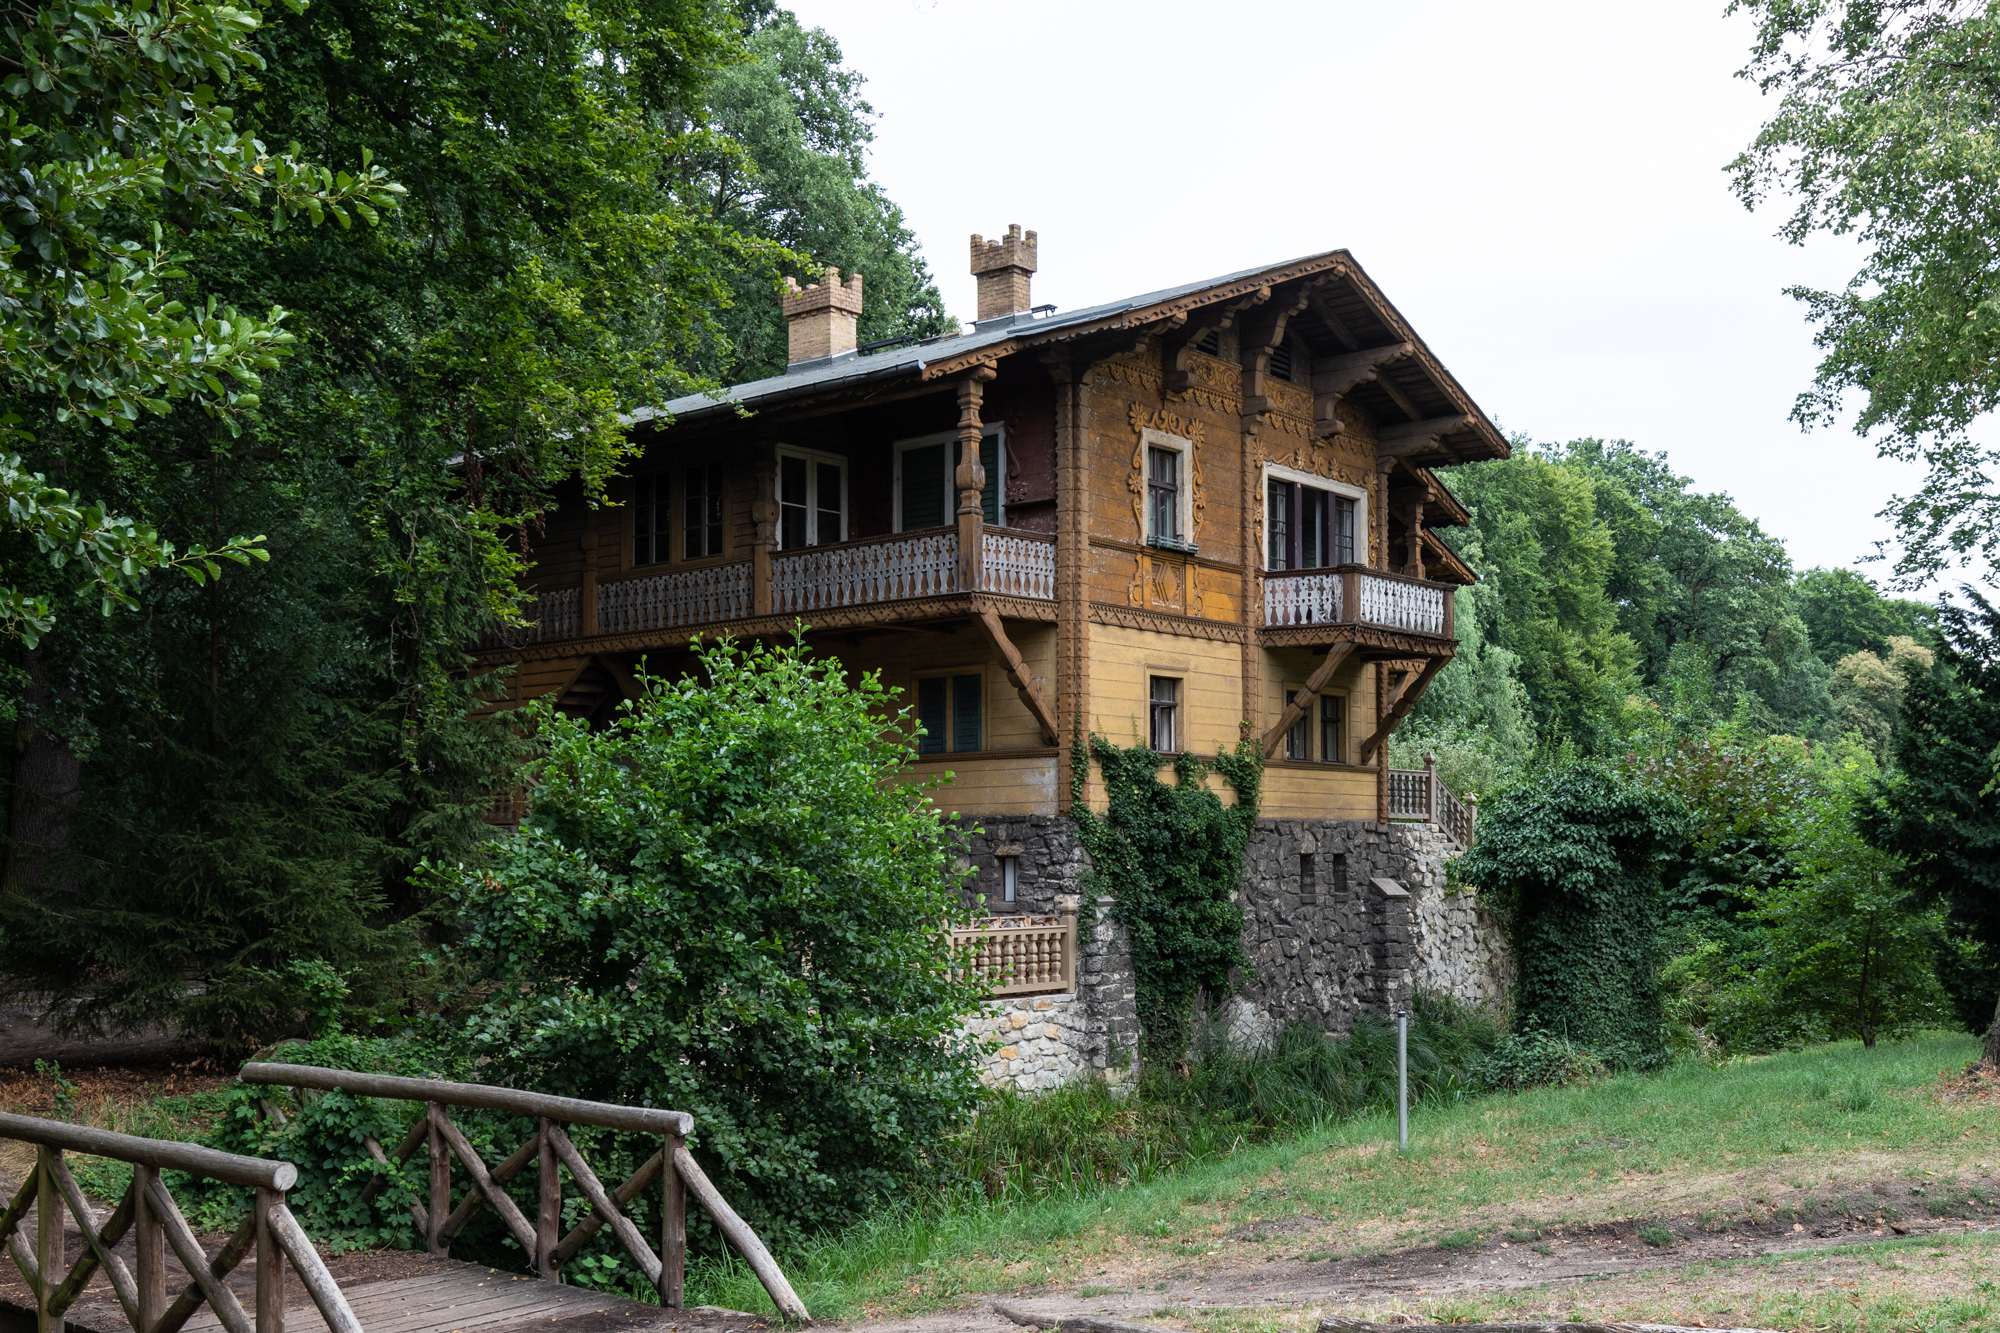 Swiss House in Klein Glienicke - a former East German enclave separated from West Berlin by the Berlin Wall and only accessible with special permission